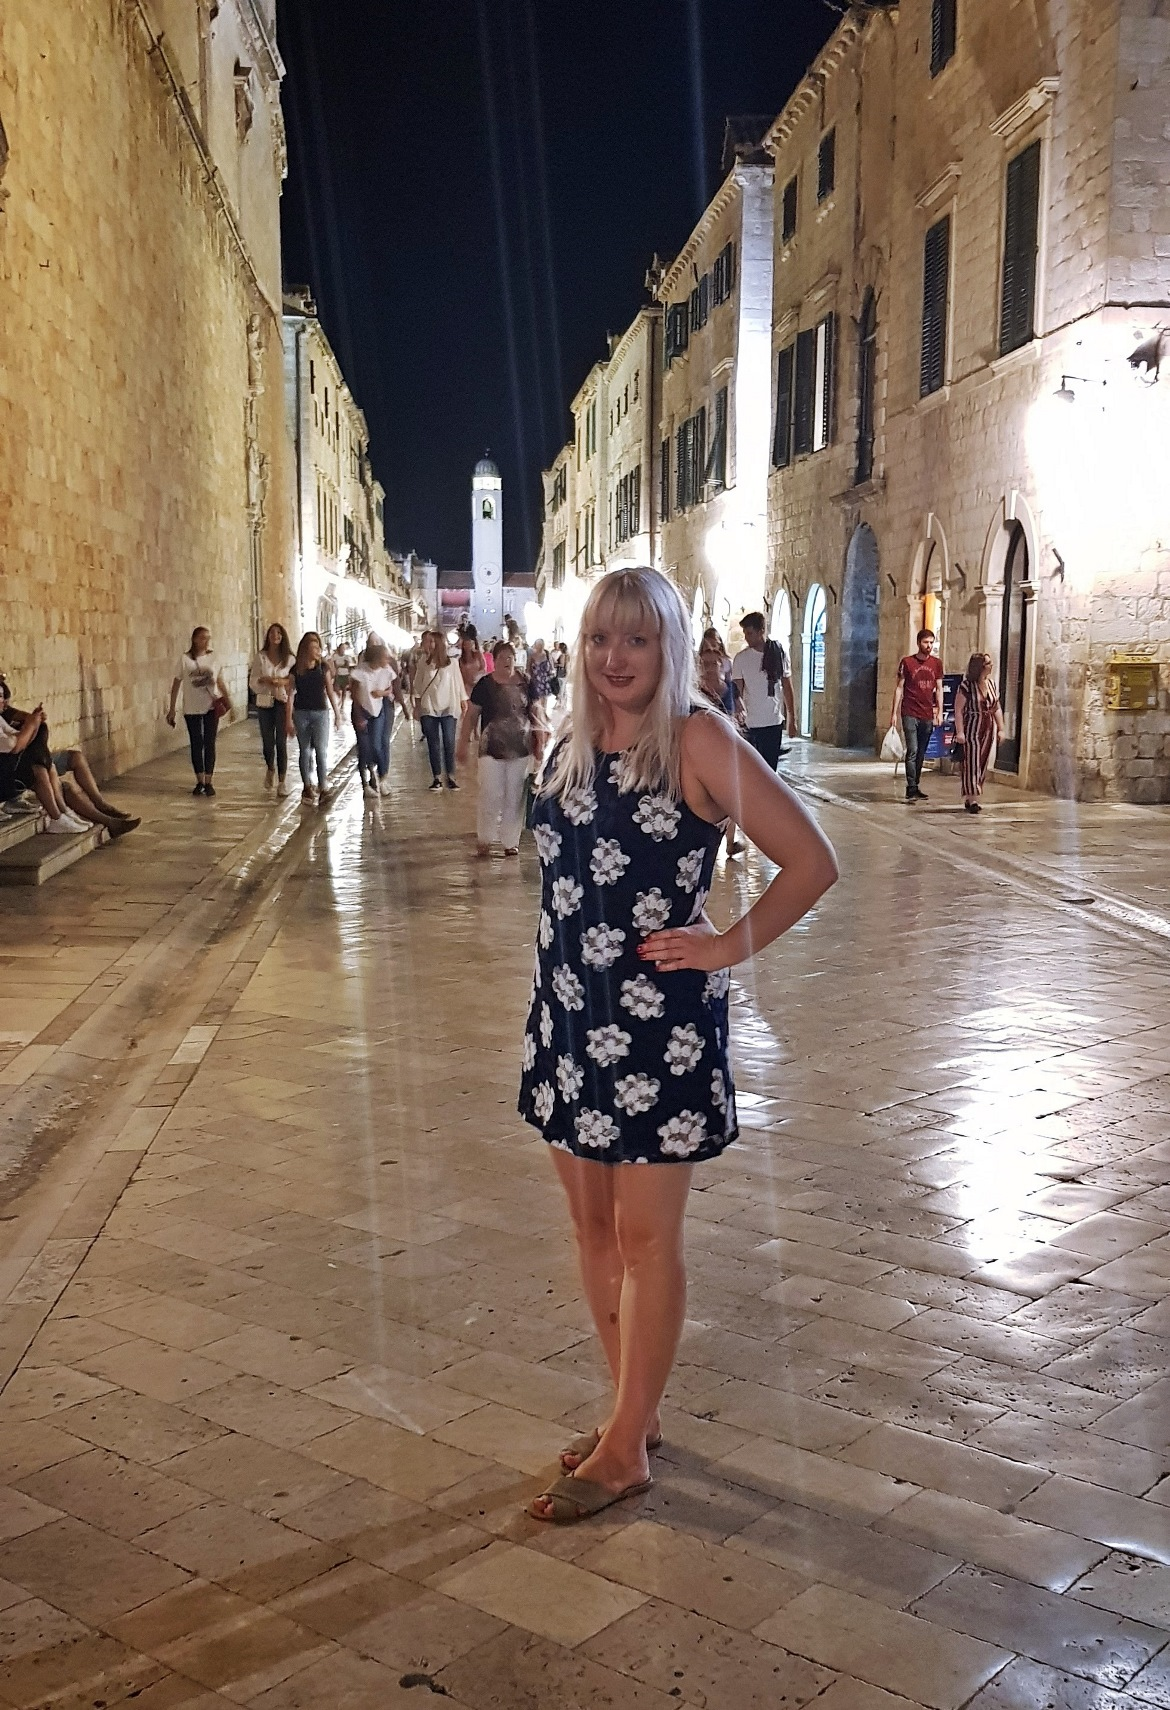 Strolling through the Old Town after sunset - Sightseeing in Dubrovnik, Croatia - Top Travel Tips by BeckyBecky Blogs